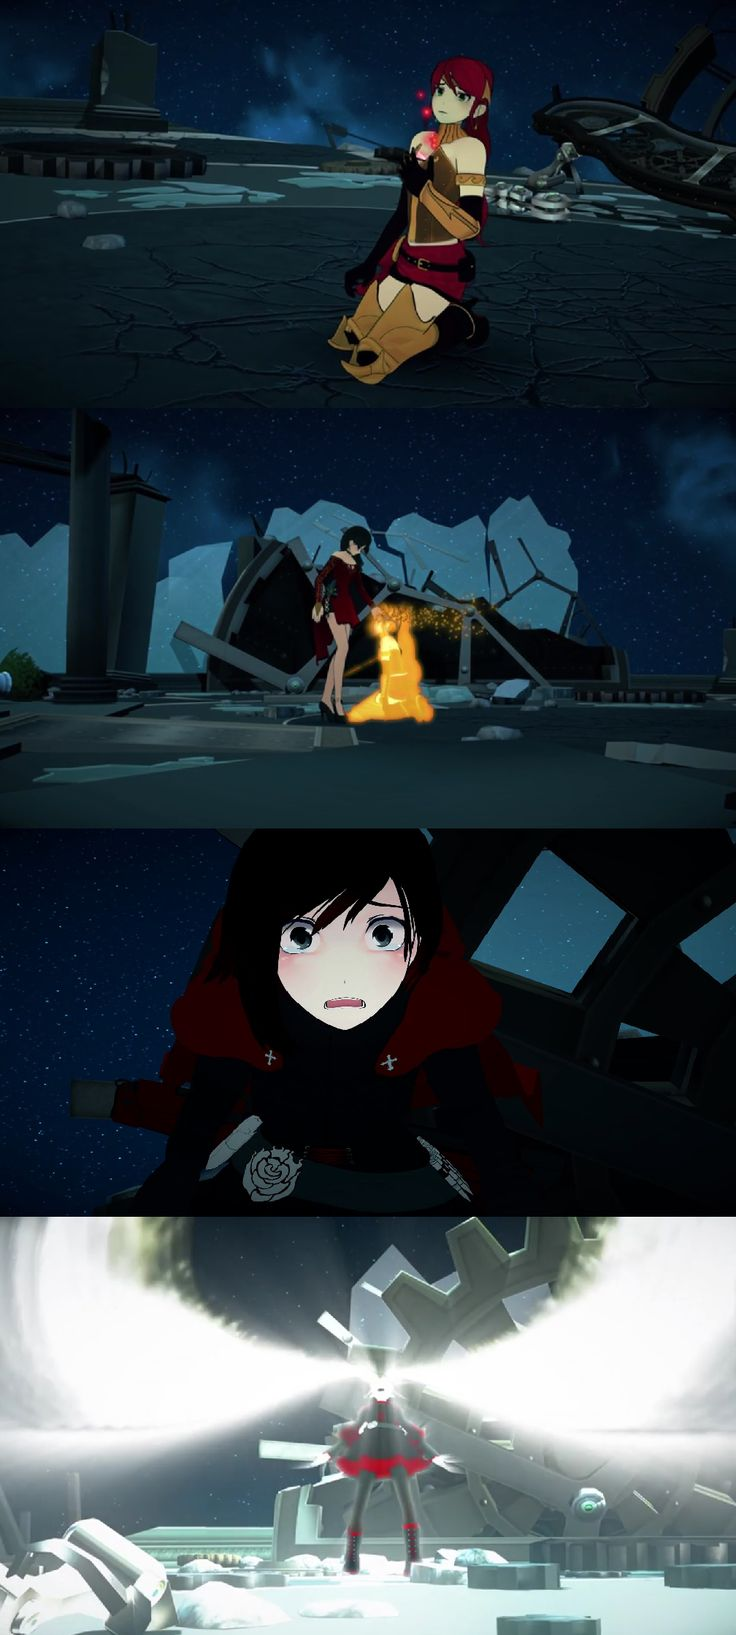 RWBY, the power of the silver eyes